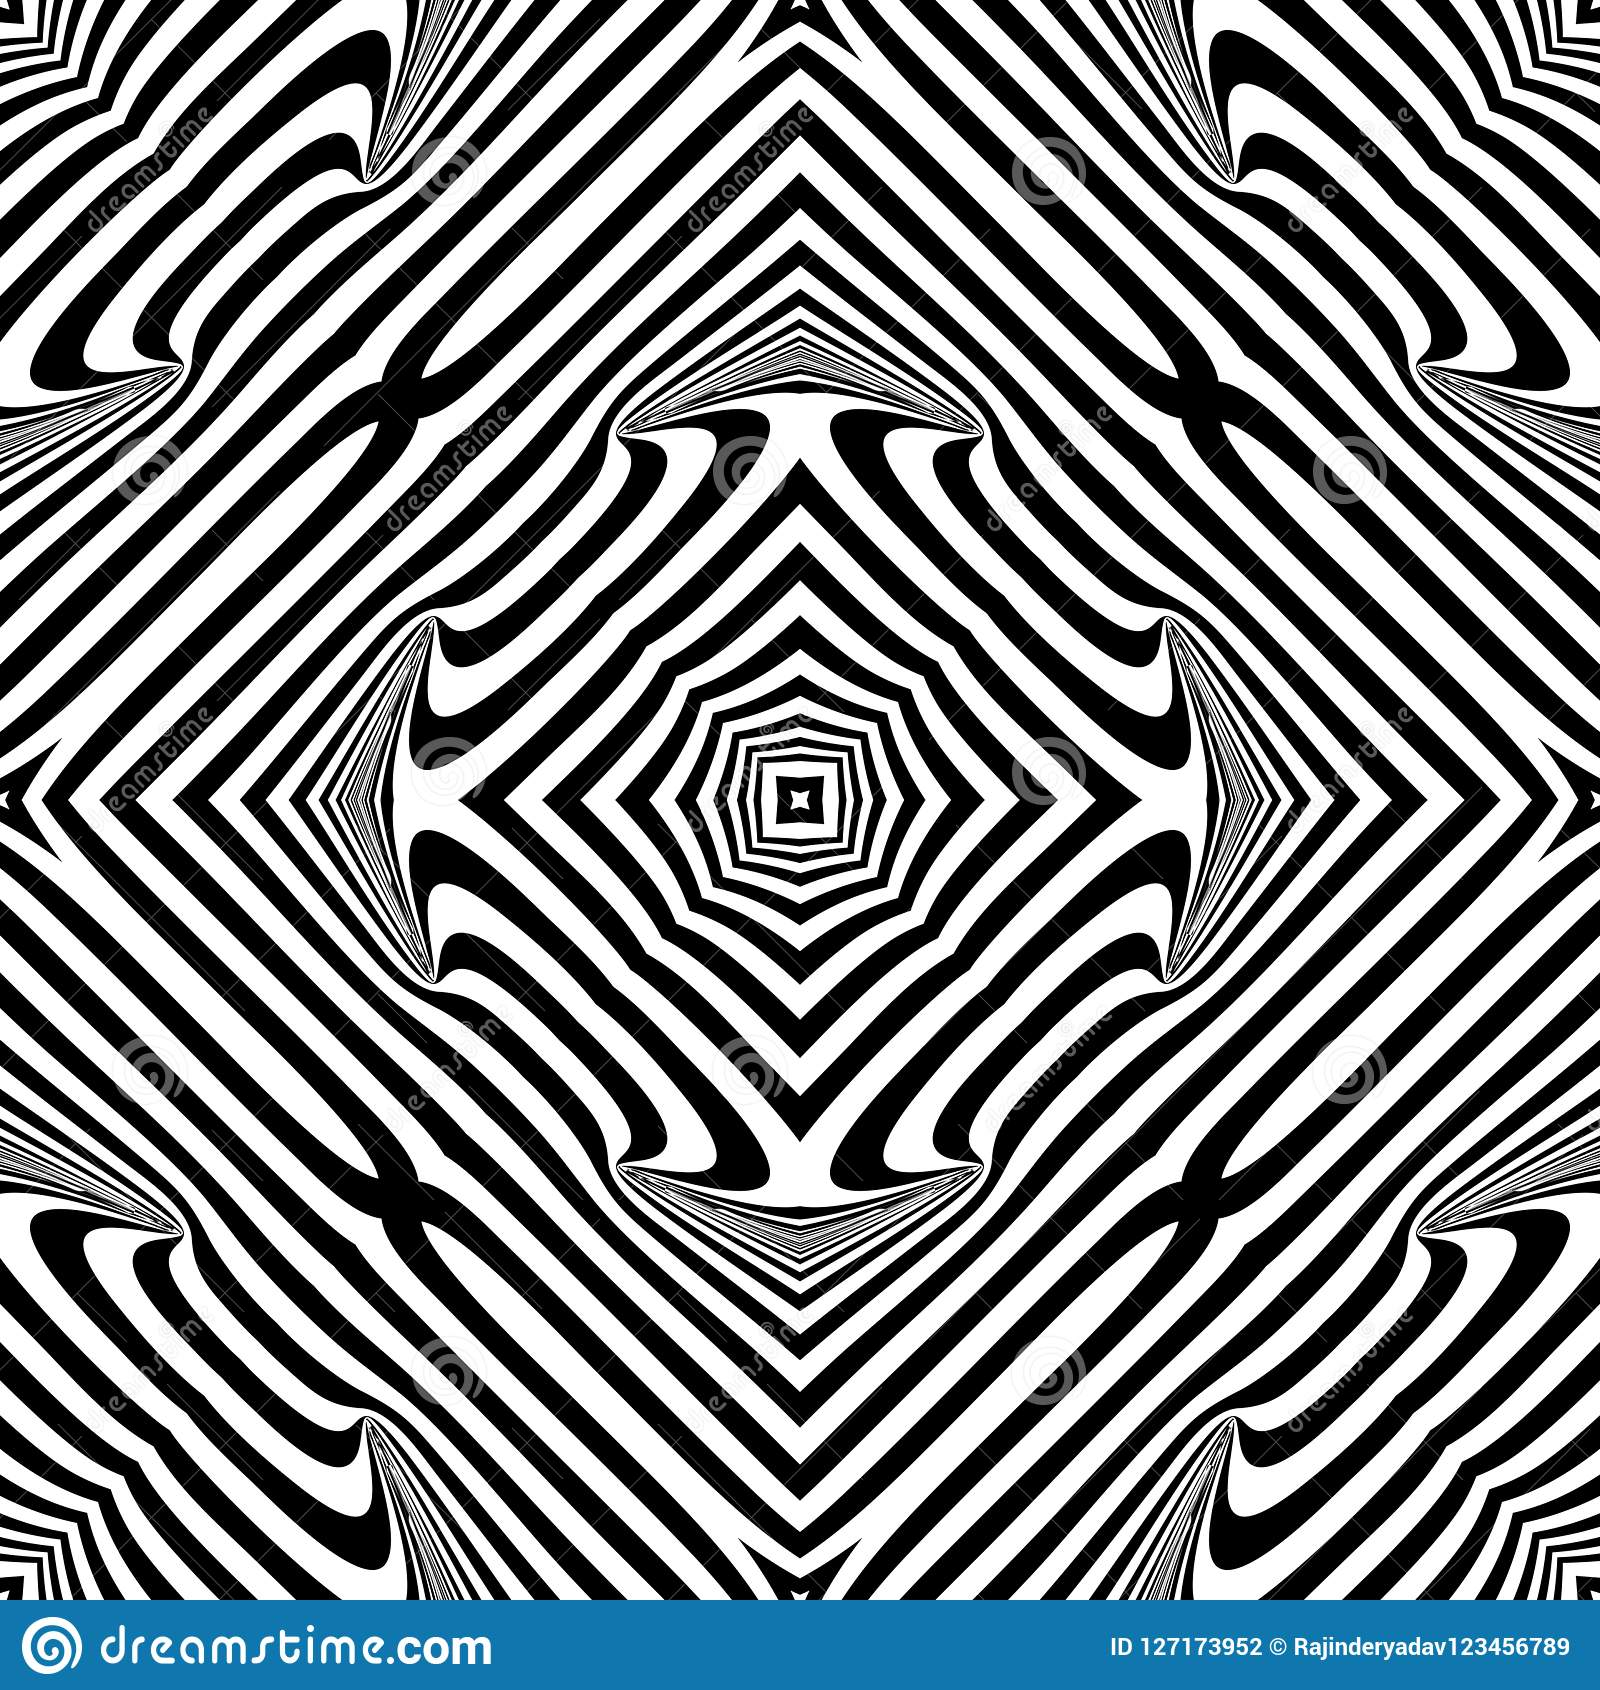 Vector Seamless Abstract Pattern Black And White Abstract Background Wallpaper Stock Vector Illustration Of Abstract Design 127173952